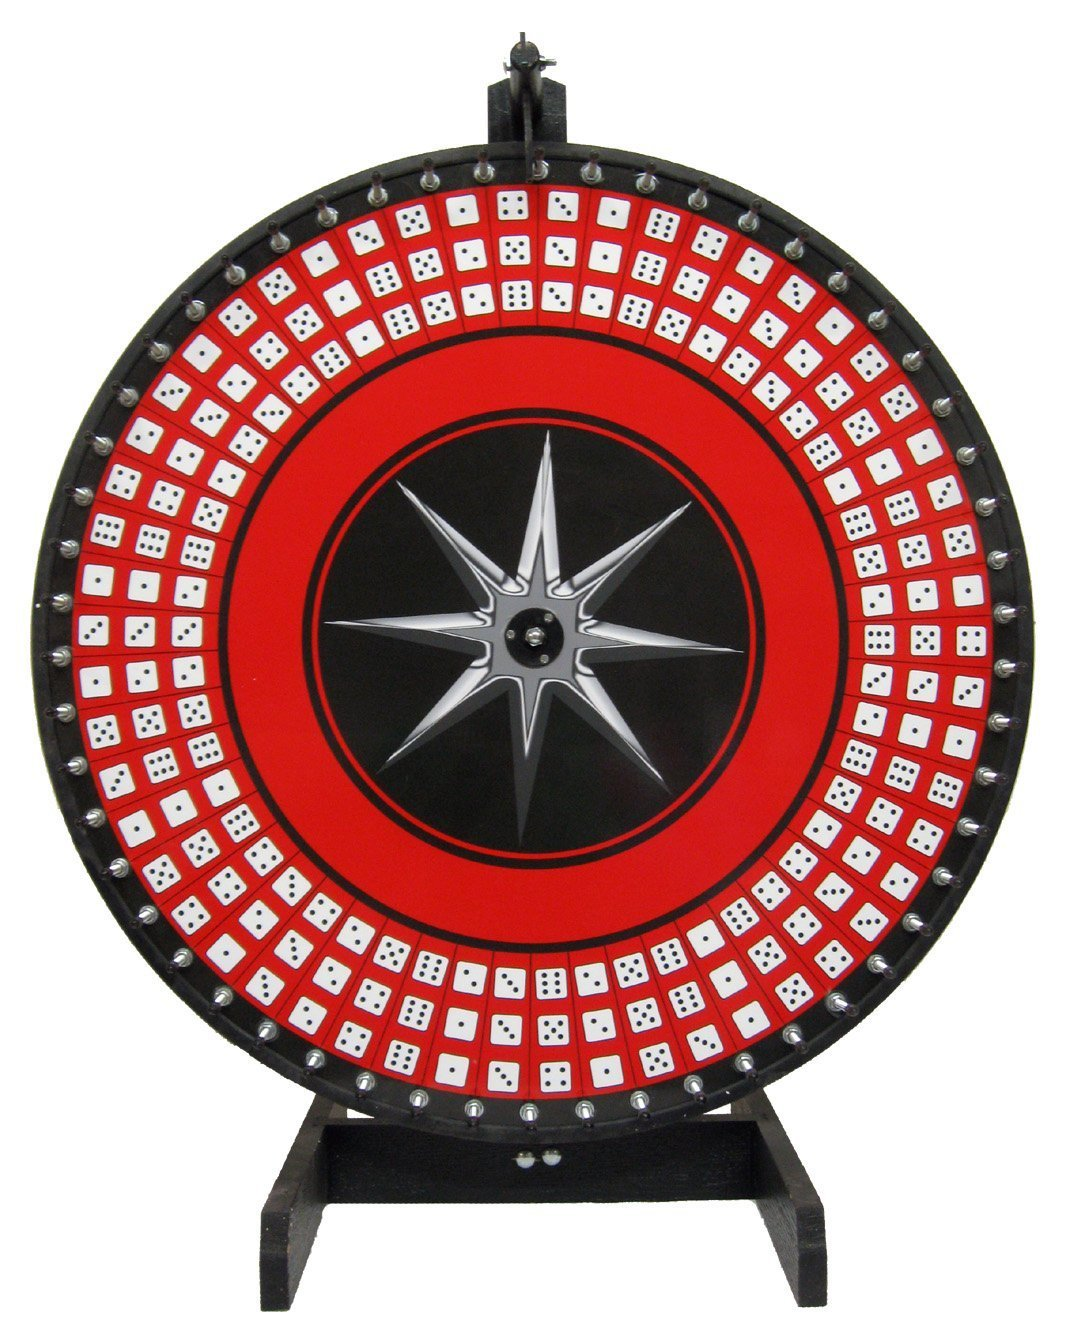 36in Big 6 Dice Game Wheel on Table Stand, Self-Adhesive Laydown Included!